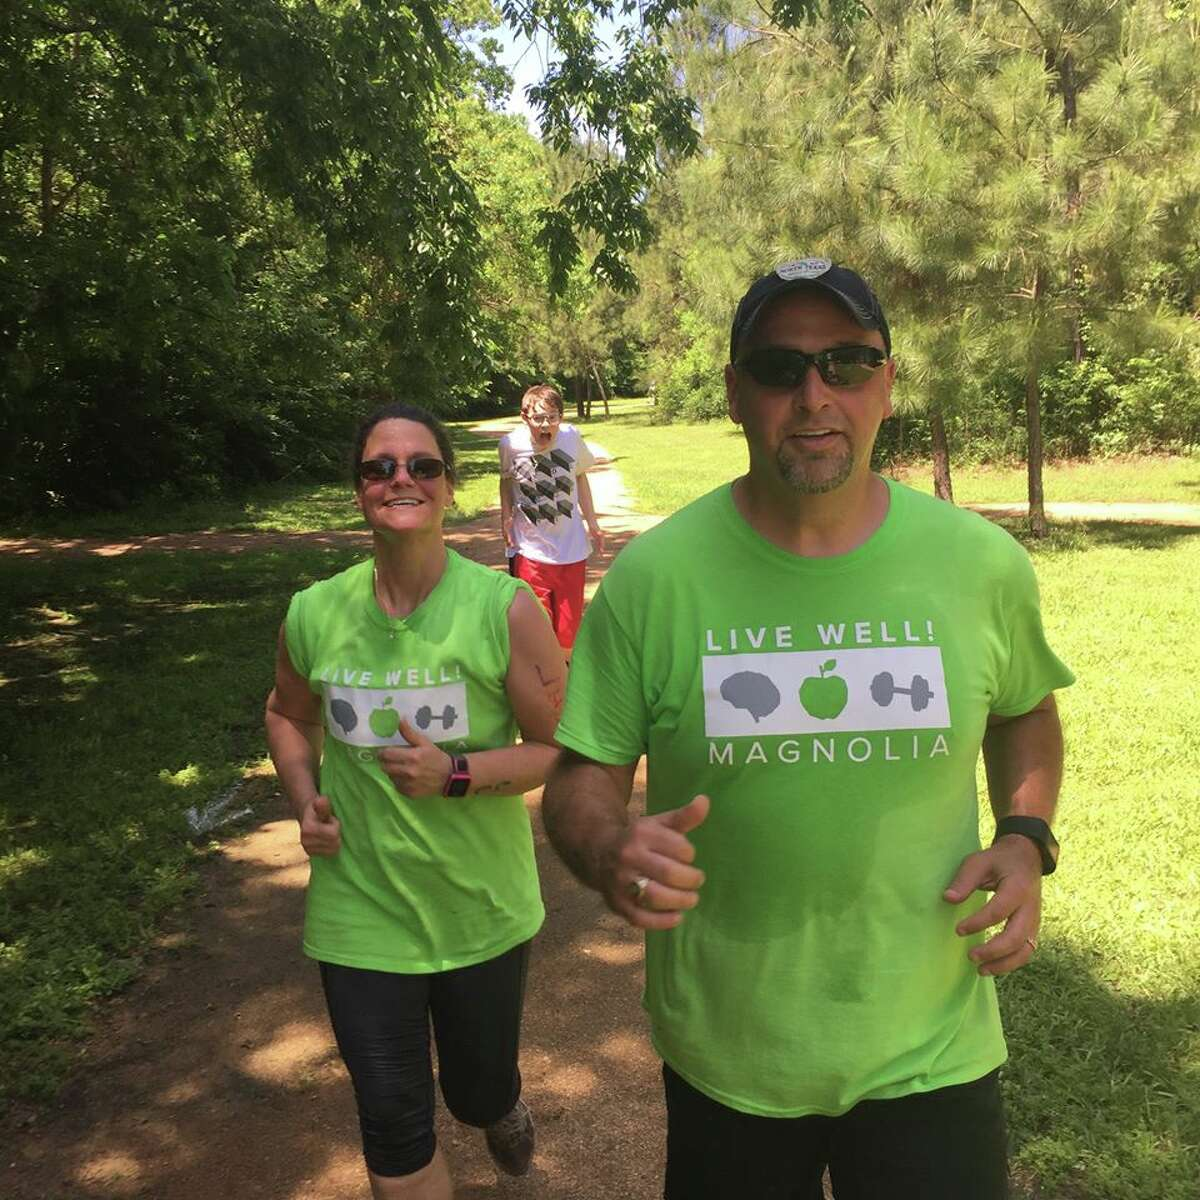 This is the Run the Woods course being offered on April 7 in Unity Park for all ages to enjoy. No mud, no water, just fun. Contact Brent Frenchak at 832-275-8240 or go by Magnolia Fitness Center at 405 Heflin St. to register before the event. Event day registration opens at 8:30 a.m. in Williams Pavilion at Unity Park.